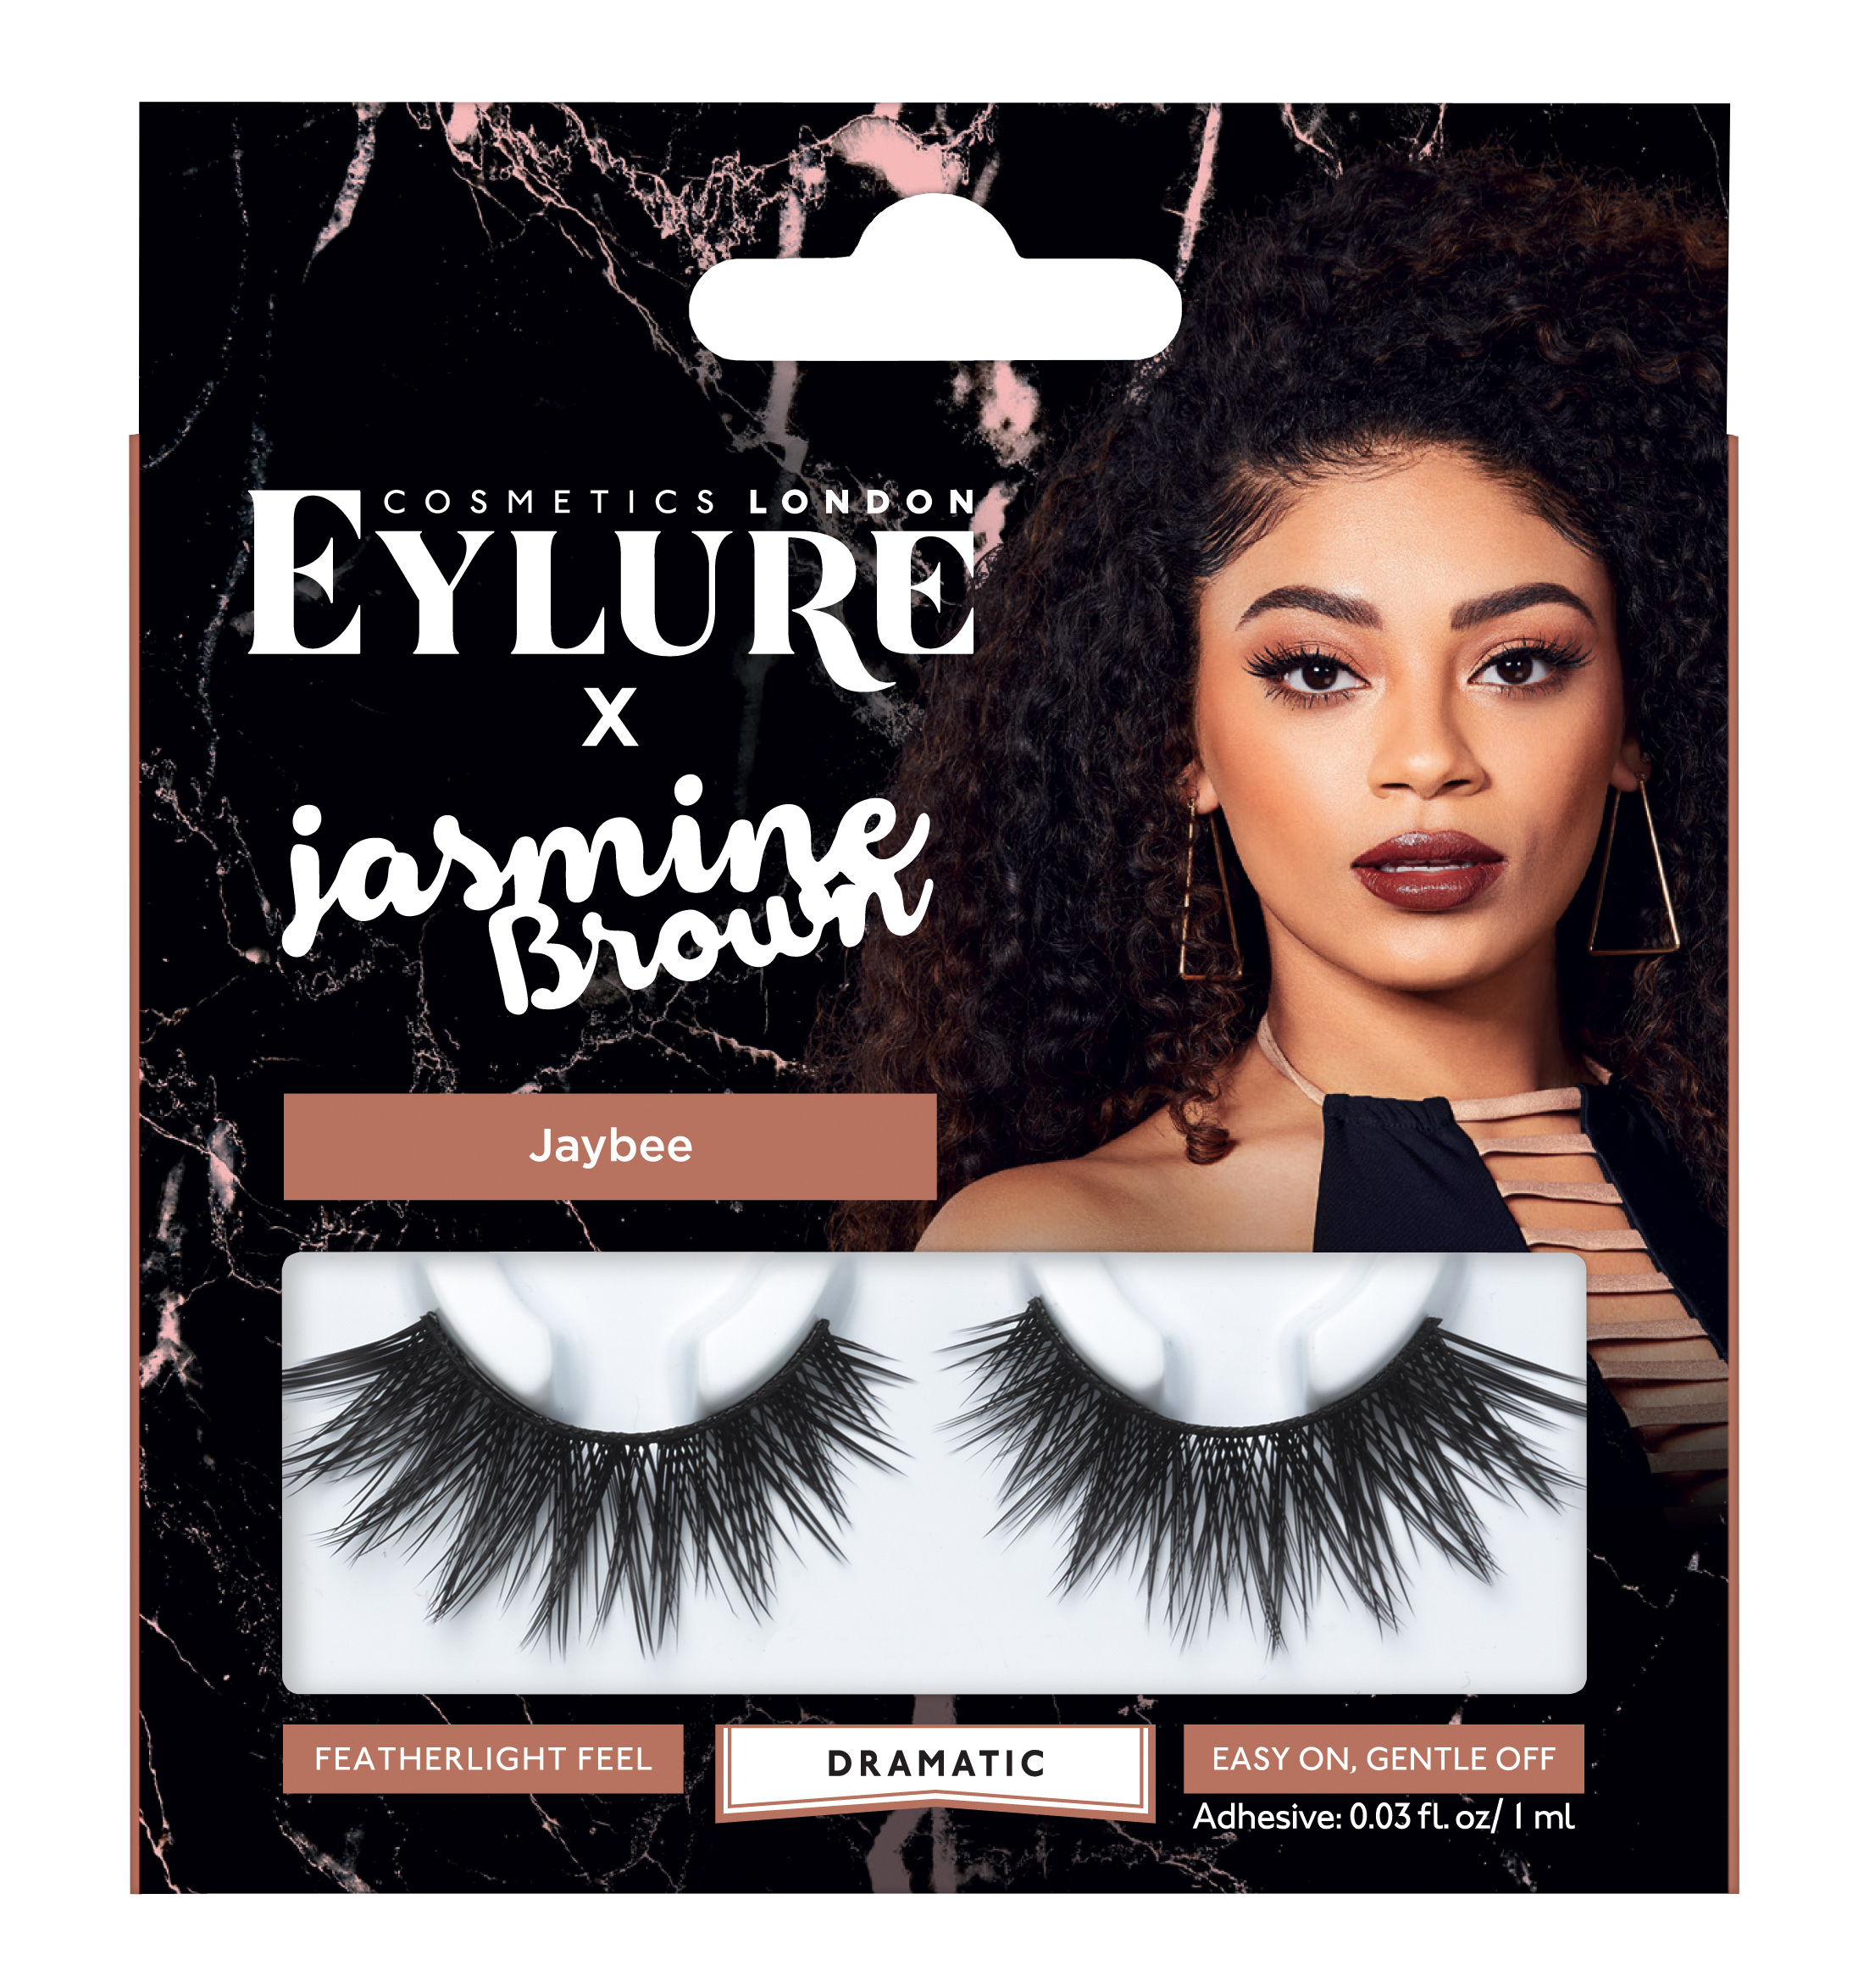 Eylure Jasmine Brown JayBee False Eyelashes